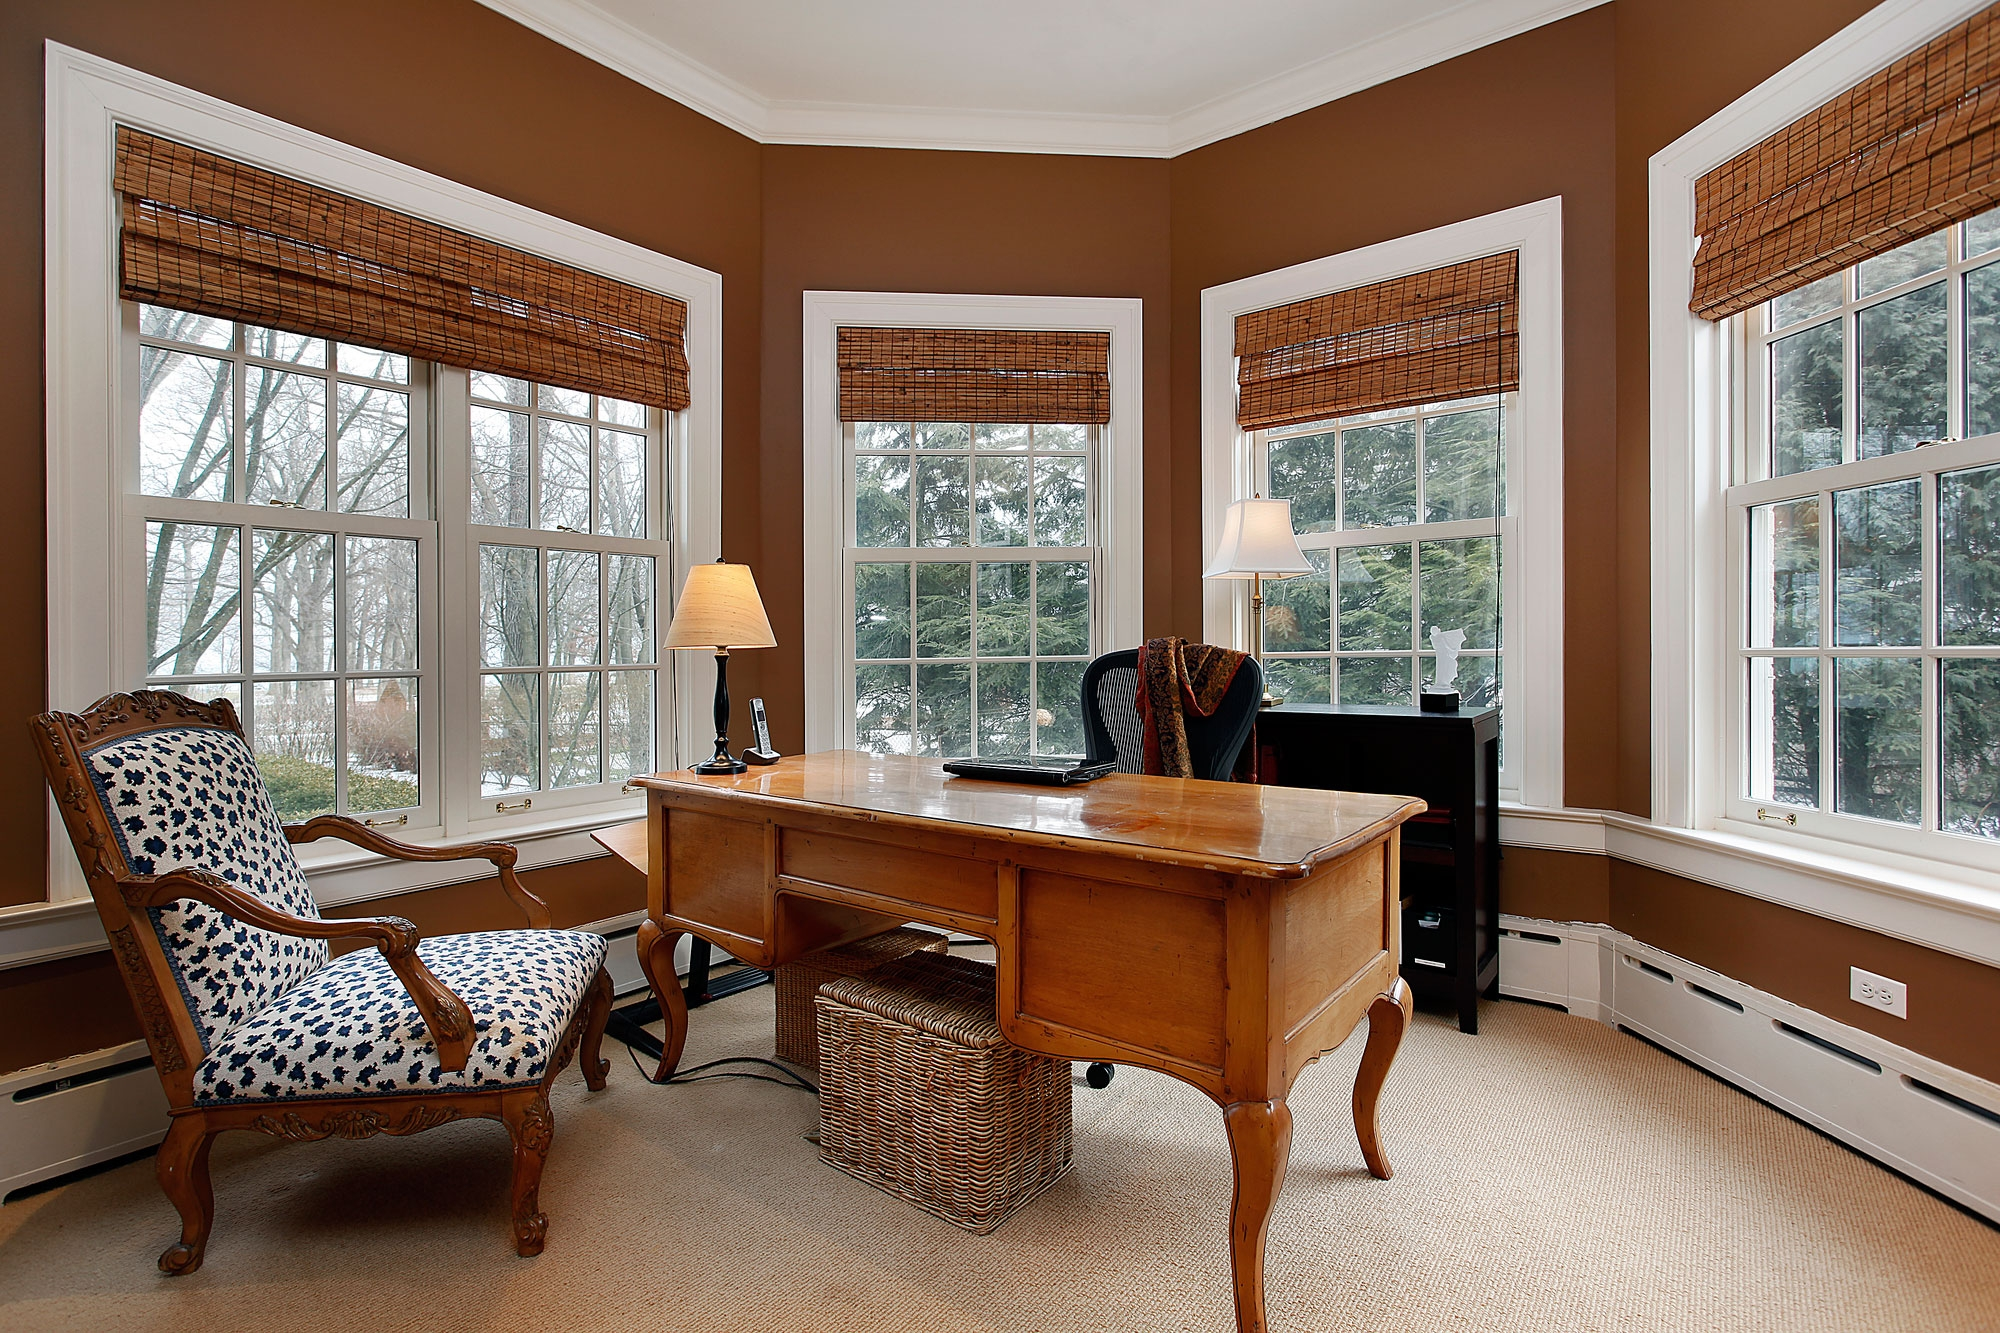 Home Office Furniture Chicago chicago lakeview home office furniture store 7 Inspirations For Your Home Office Design